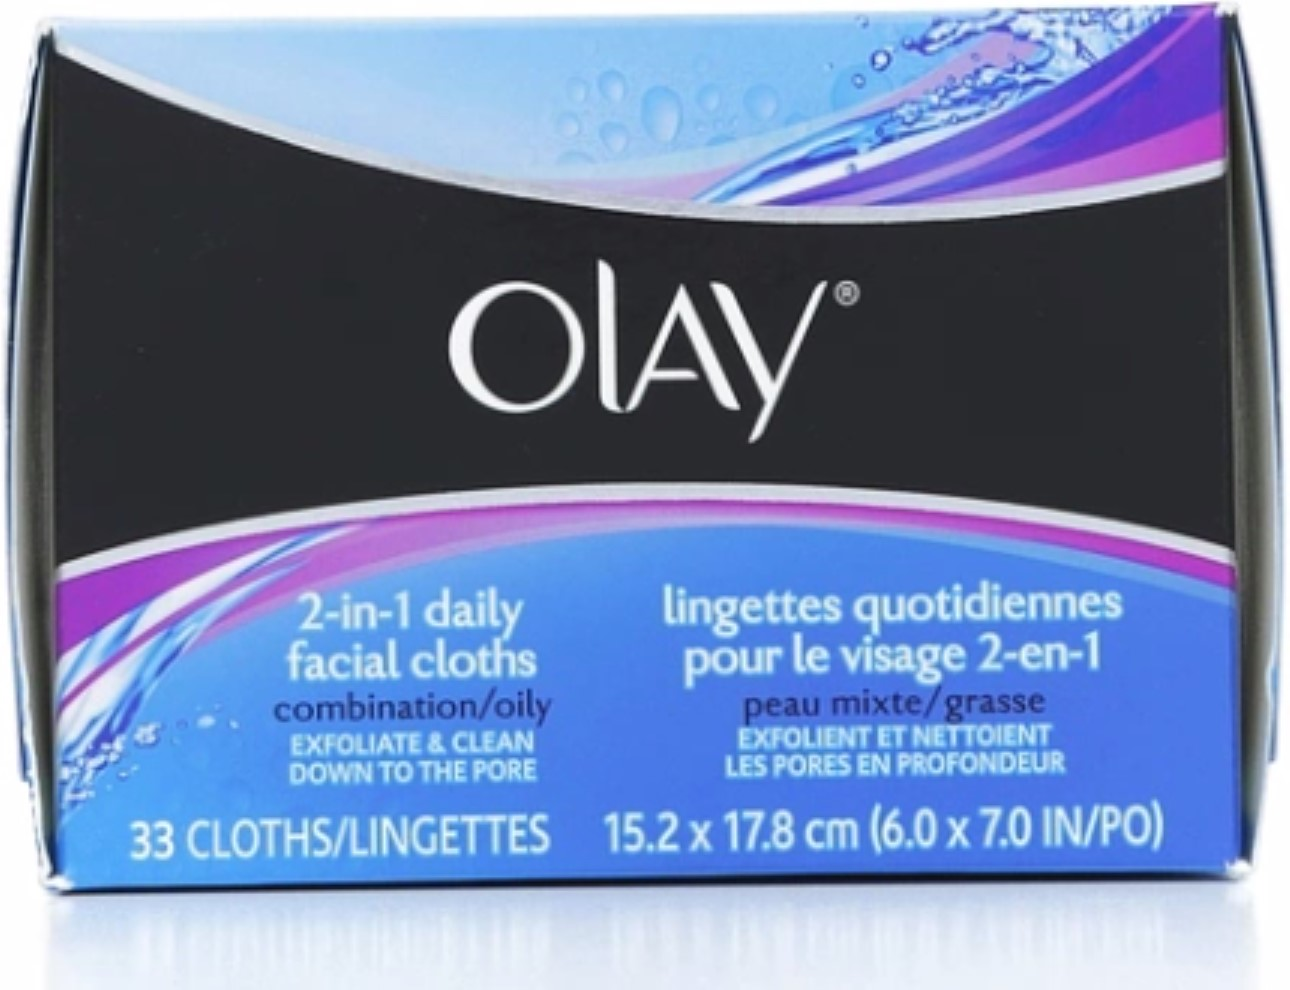 OLAY 2-in-1 Daily Facial Cloths 33 ea (Pack of 6) Babor Extra Firming Serum (30ml)